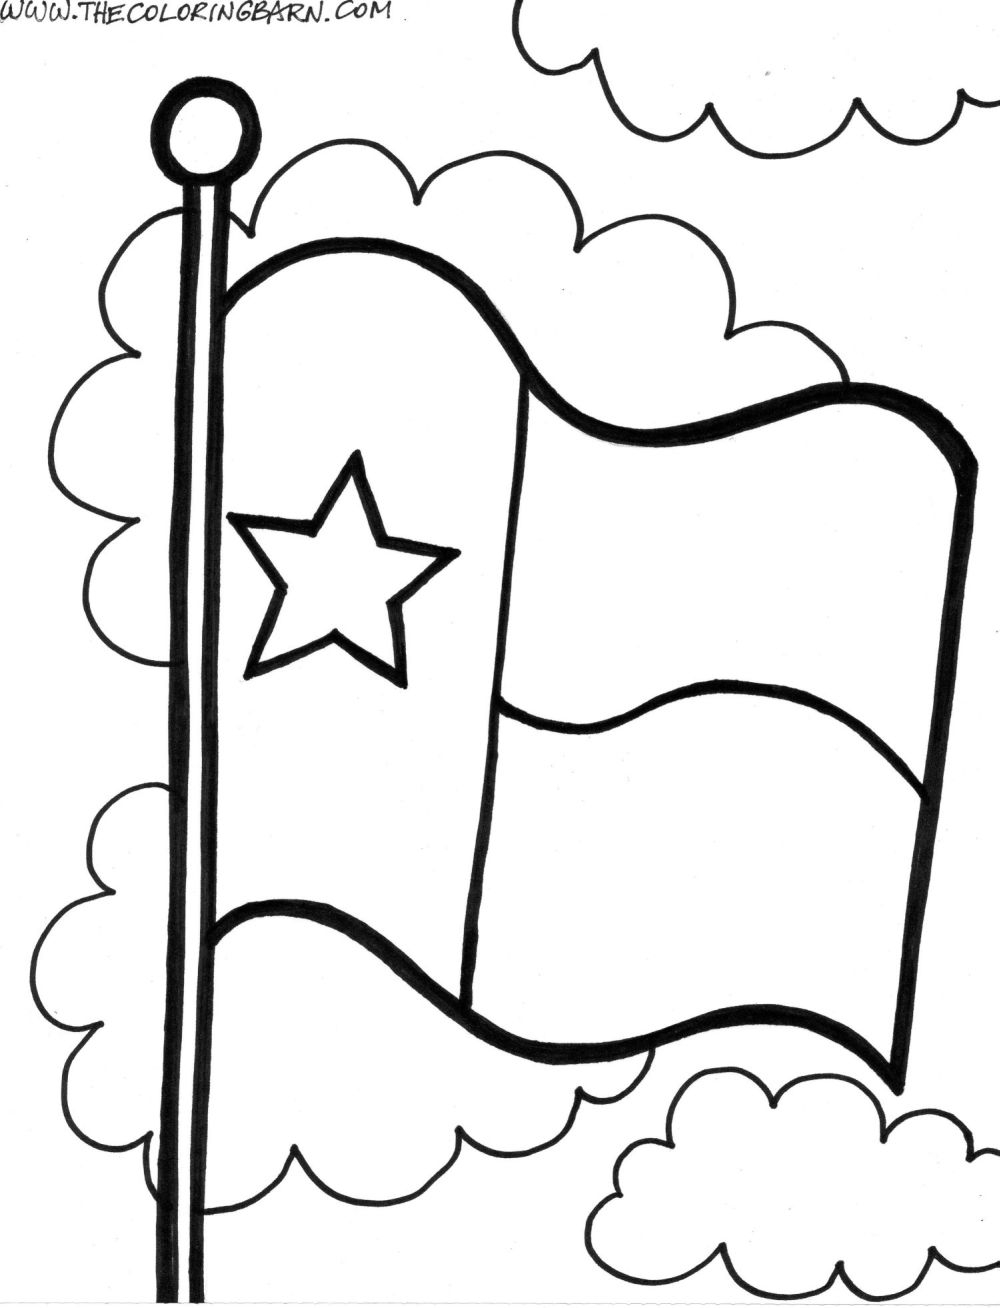 Coloring Pages Texas Flag 1440—1020 Download Of Perspective Texas Tech Coloring Pages Page to Print